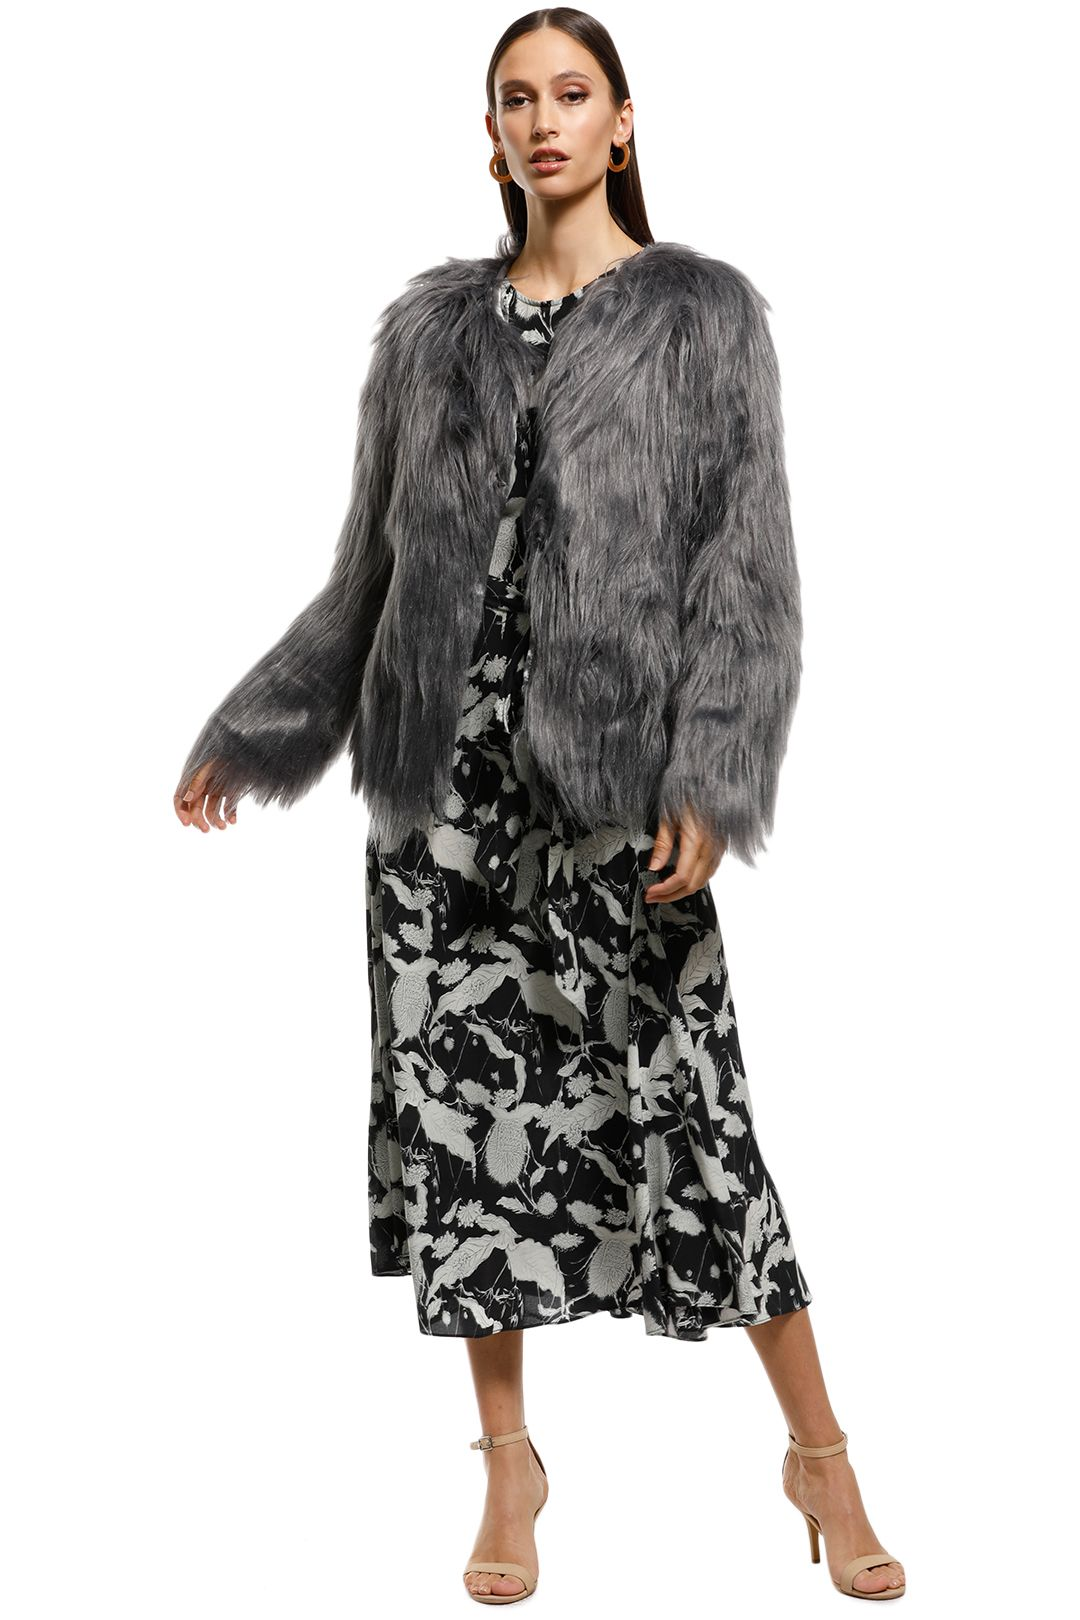 Everly - Marmont Faux Fur Jacket - Dark Grey - Front